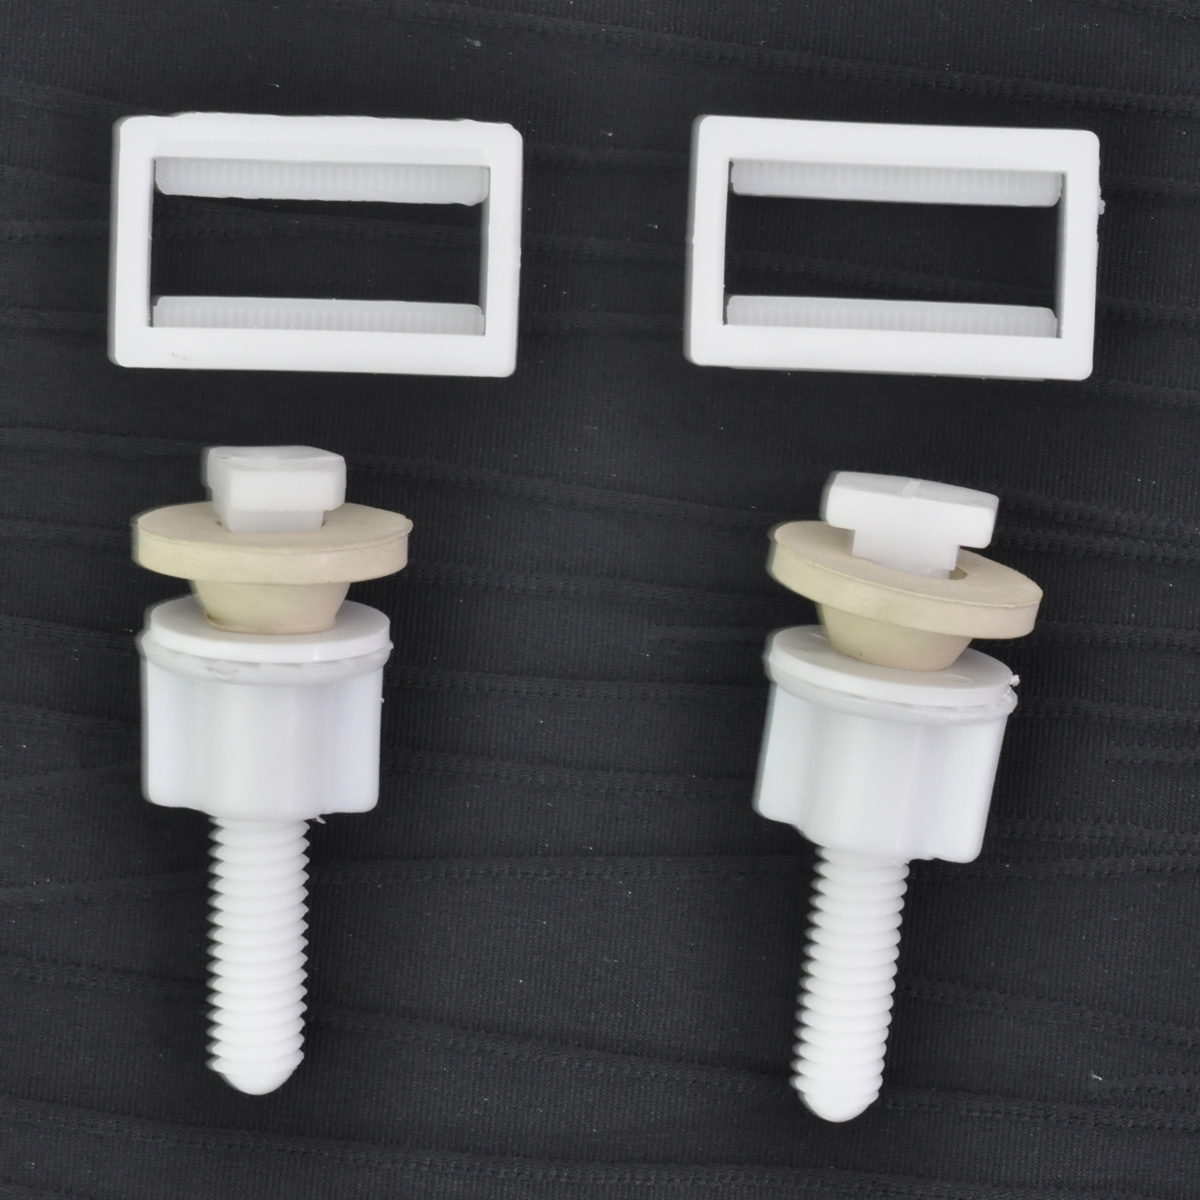 Toilet fasteners promotional safety glasses